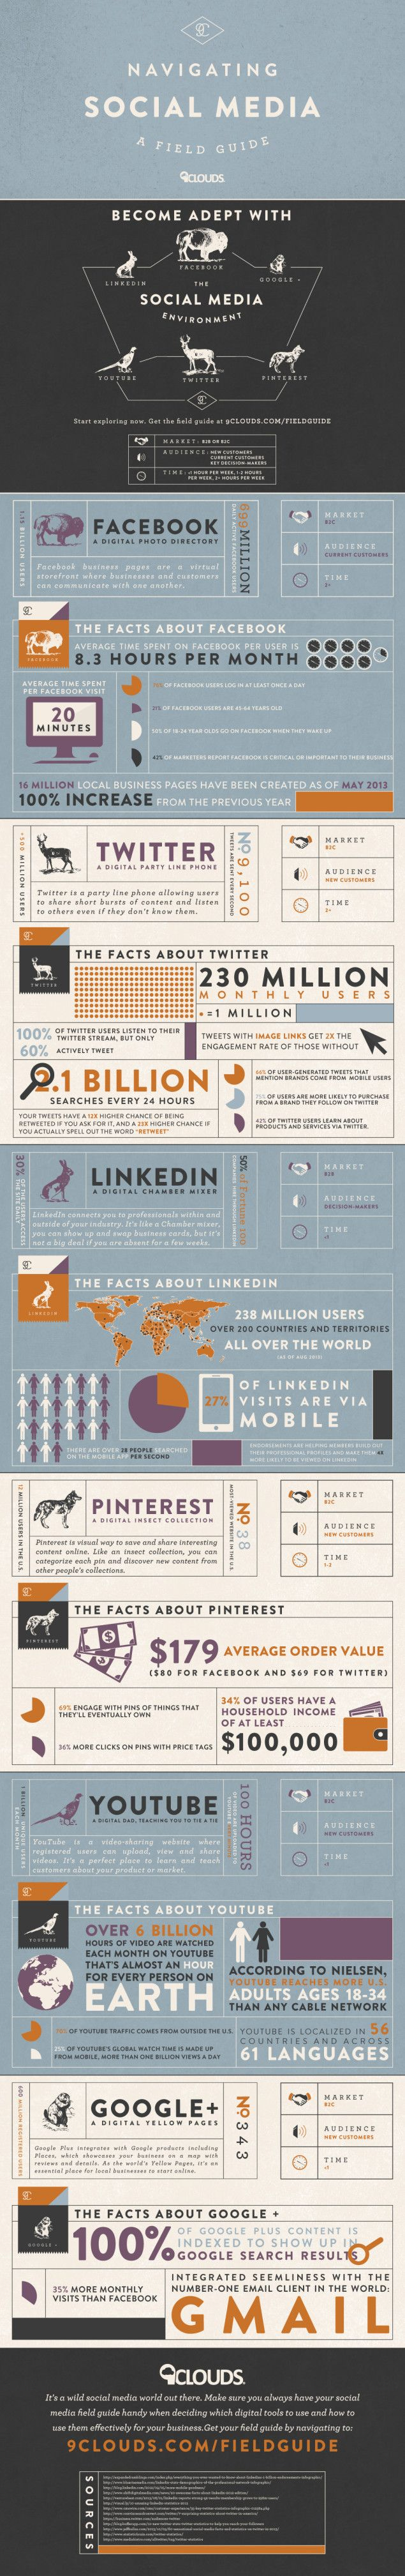 9 Clouds Field Guide to Social Media